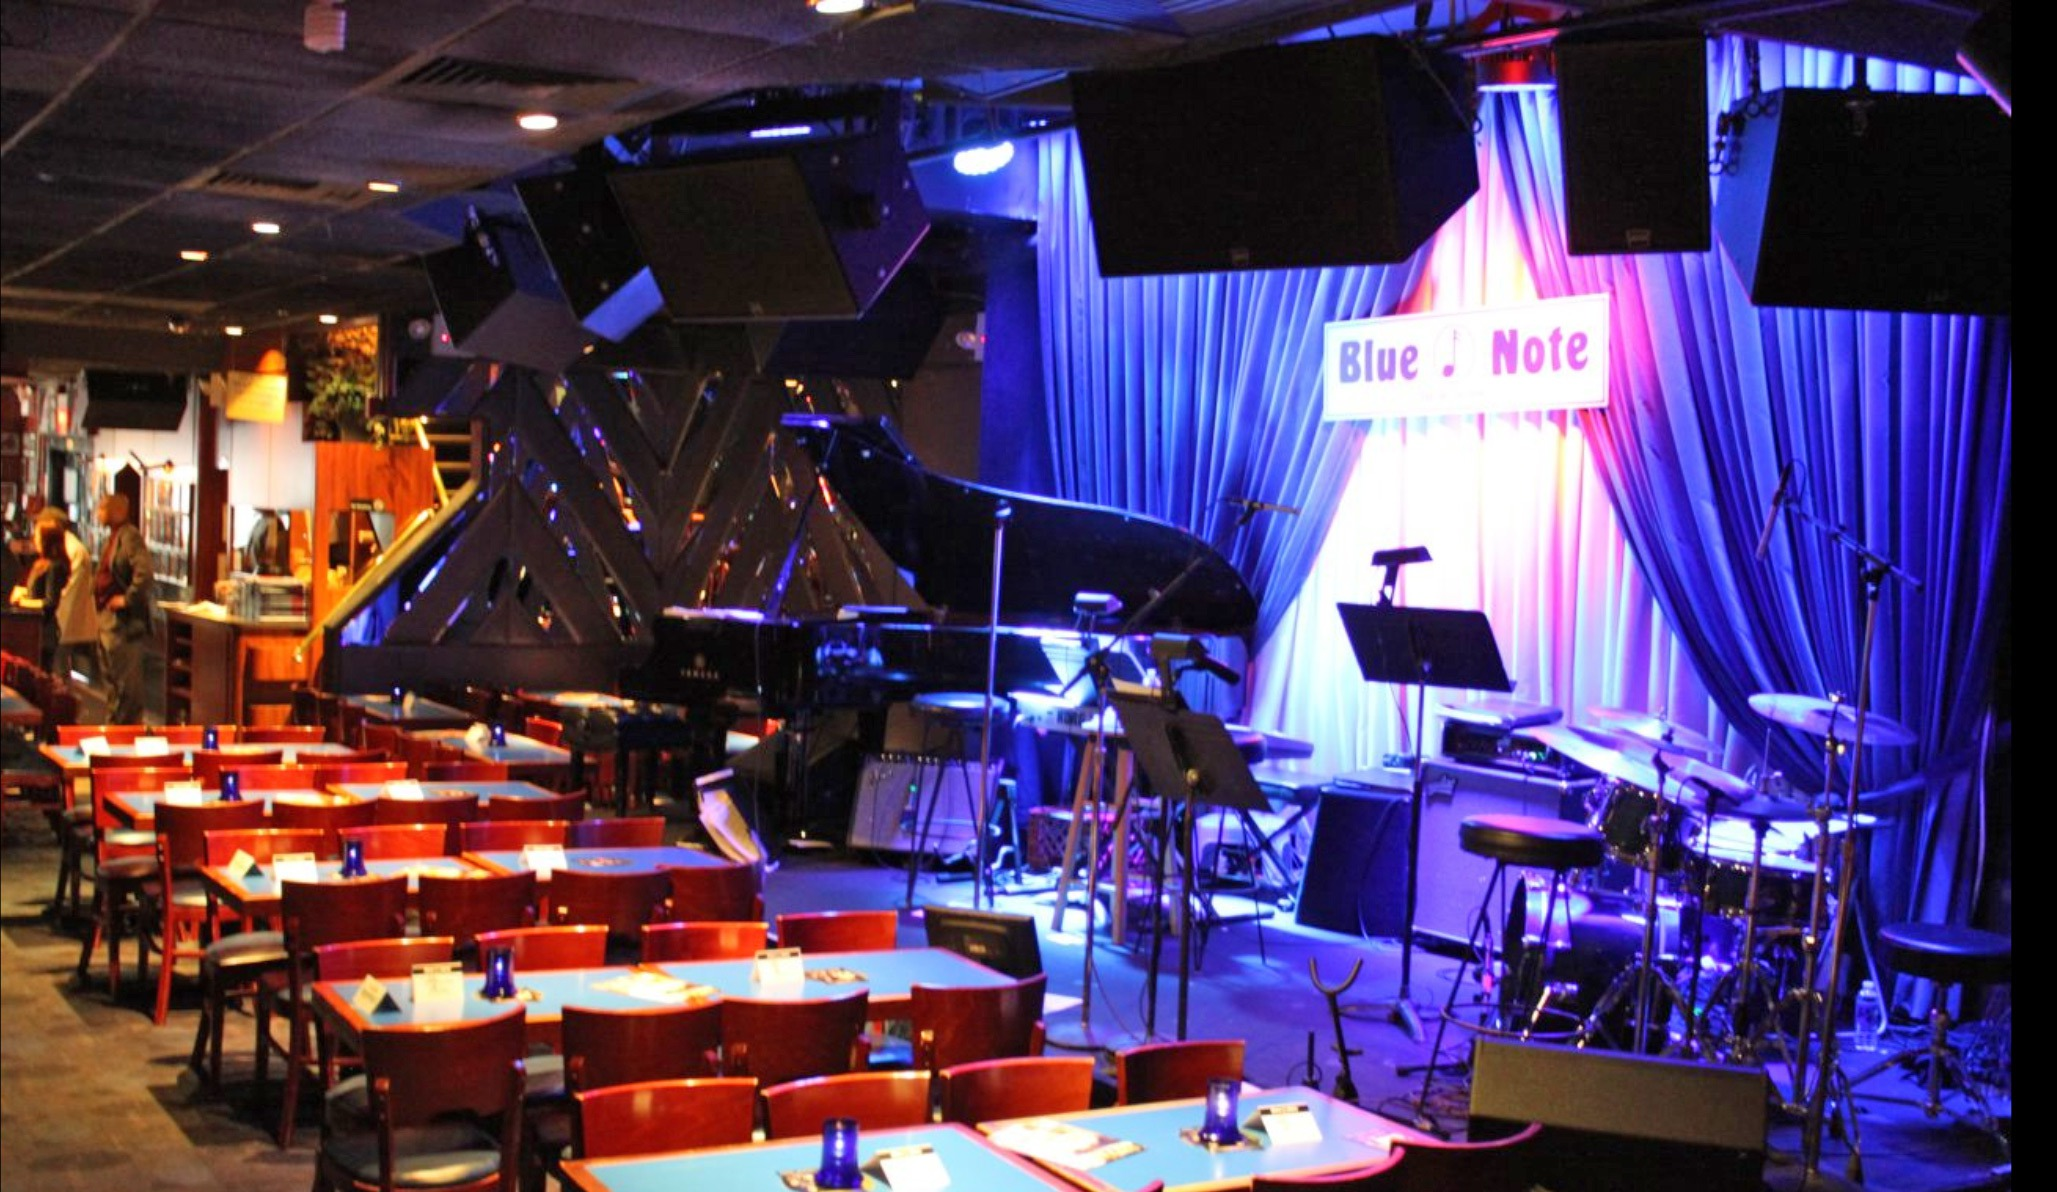 Blue-Note-New-York-Jazz-Bar